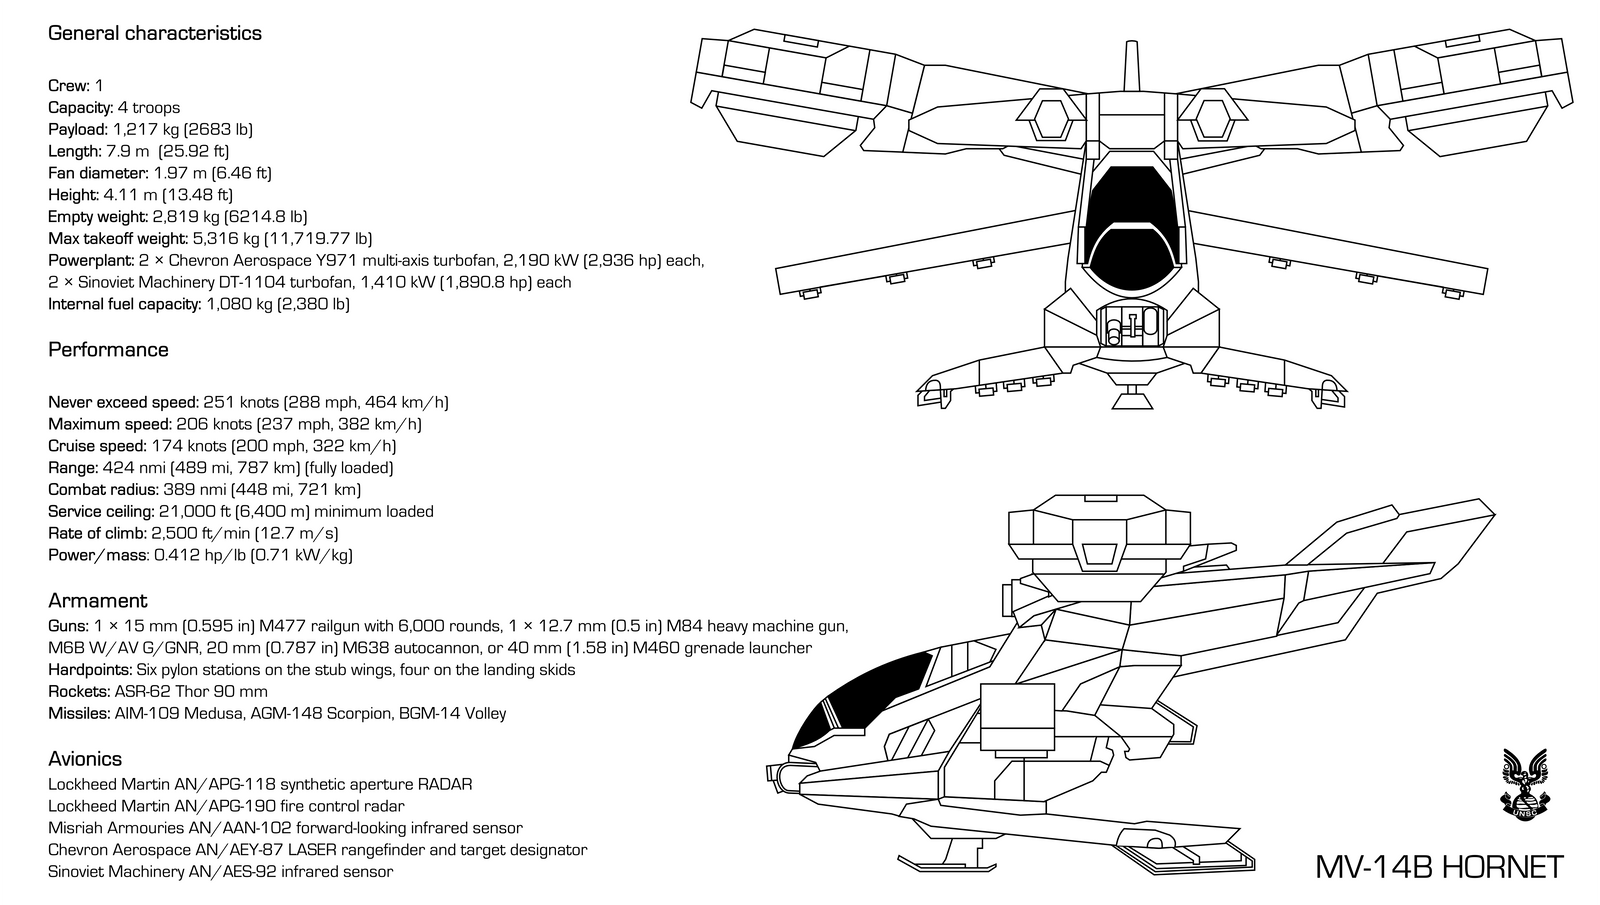 mv_14b_hornet_diagram_by_splinteredmatt d4wvx38 mv 14b hornet diagram by splinteredmatt on deviantart hornet 740t wiring diagram at crackthecode.co